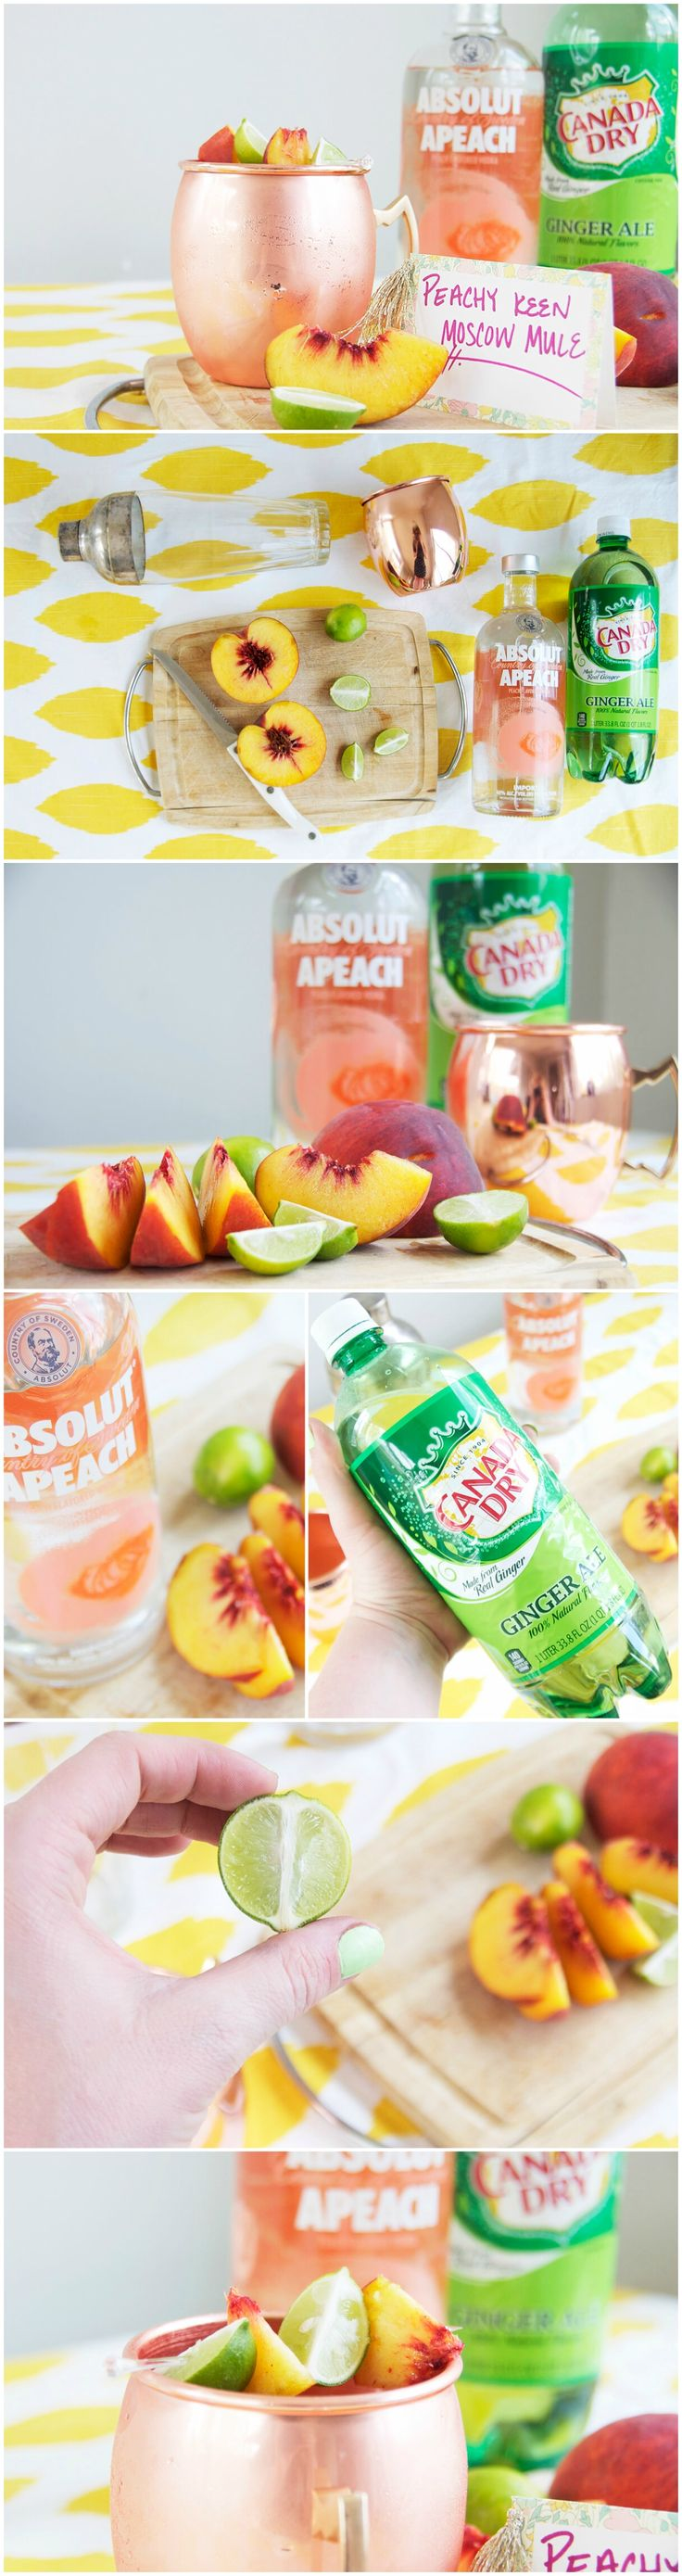 Want a perfectly peachy summer drink? Check out this twist on a classic: A Peach Moscow Mule!